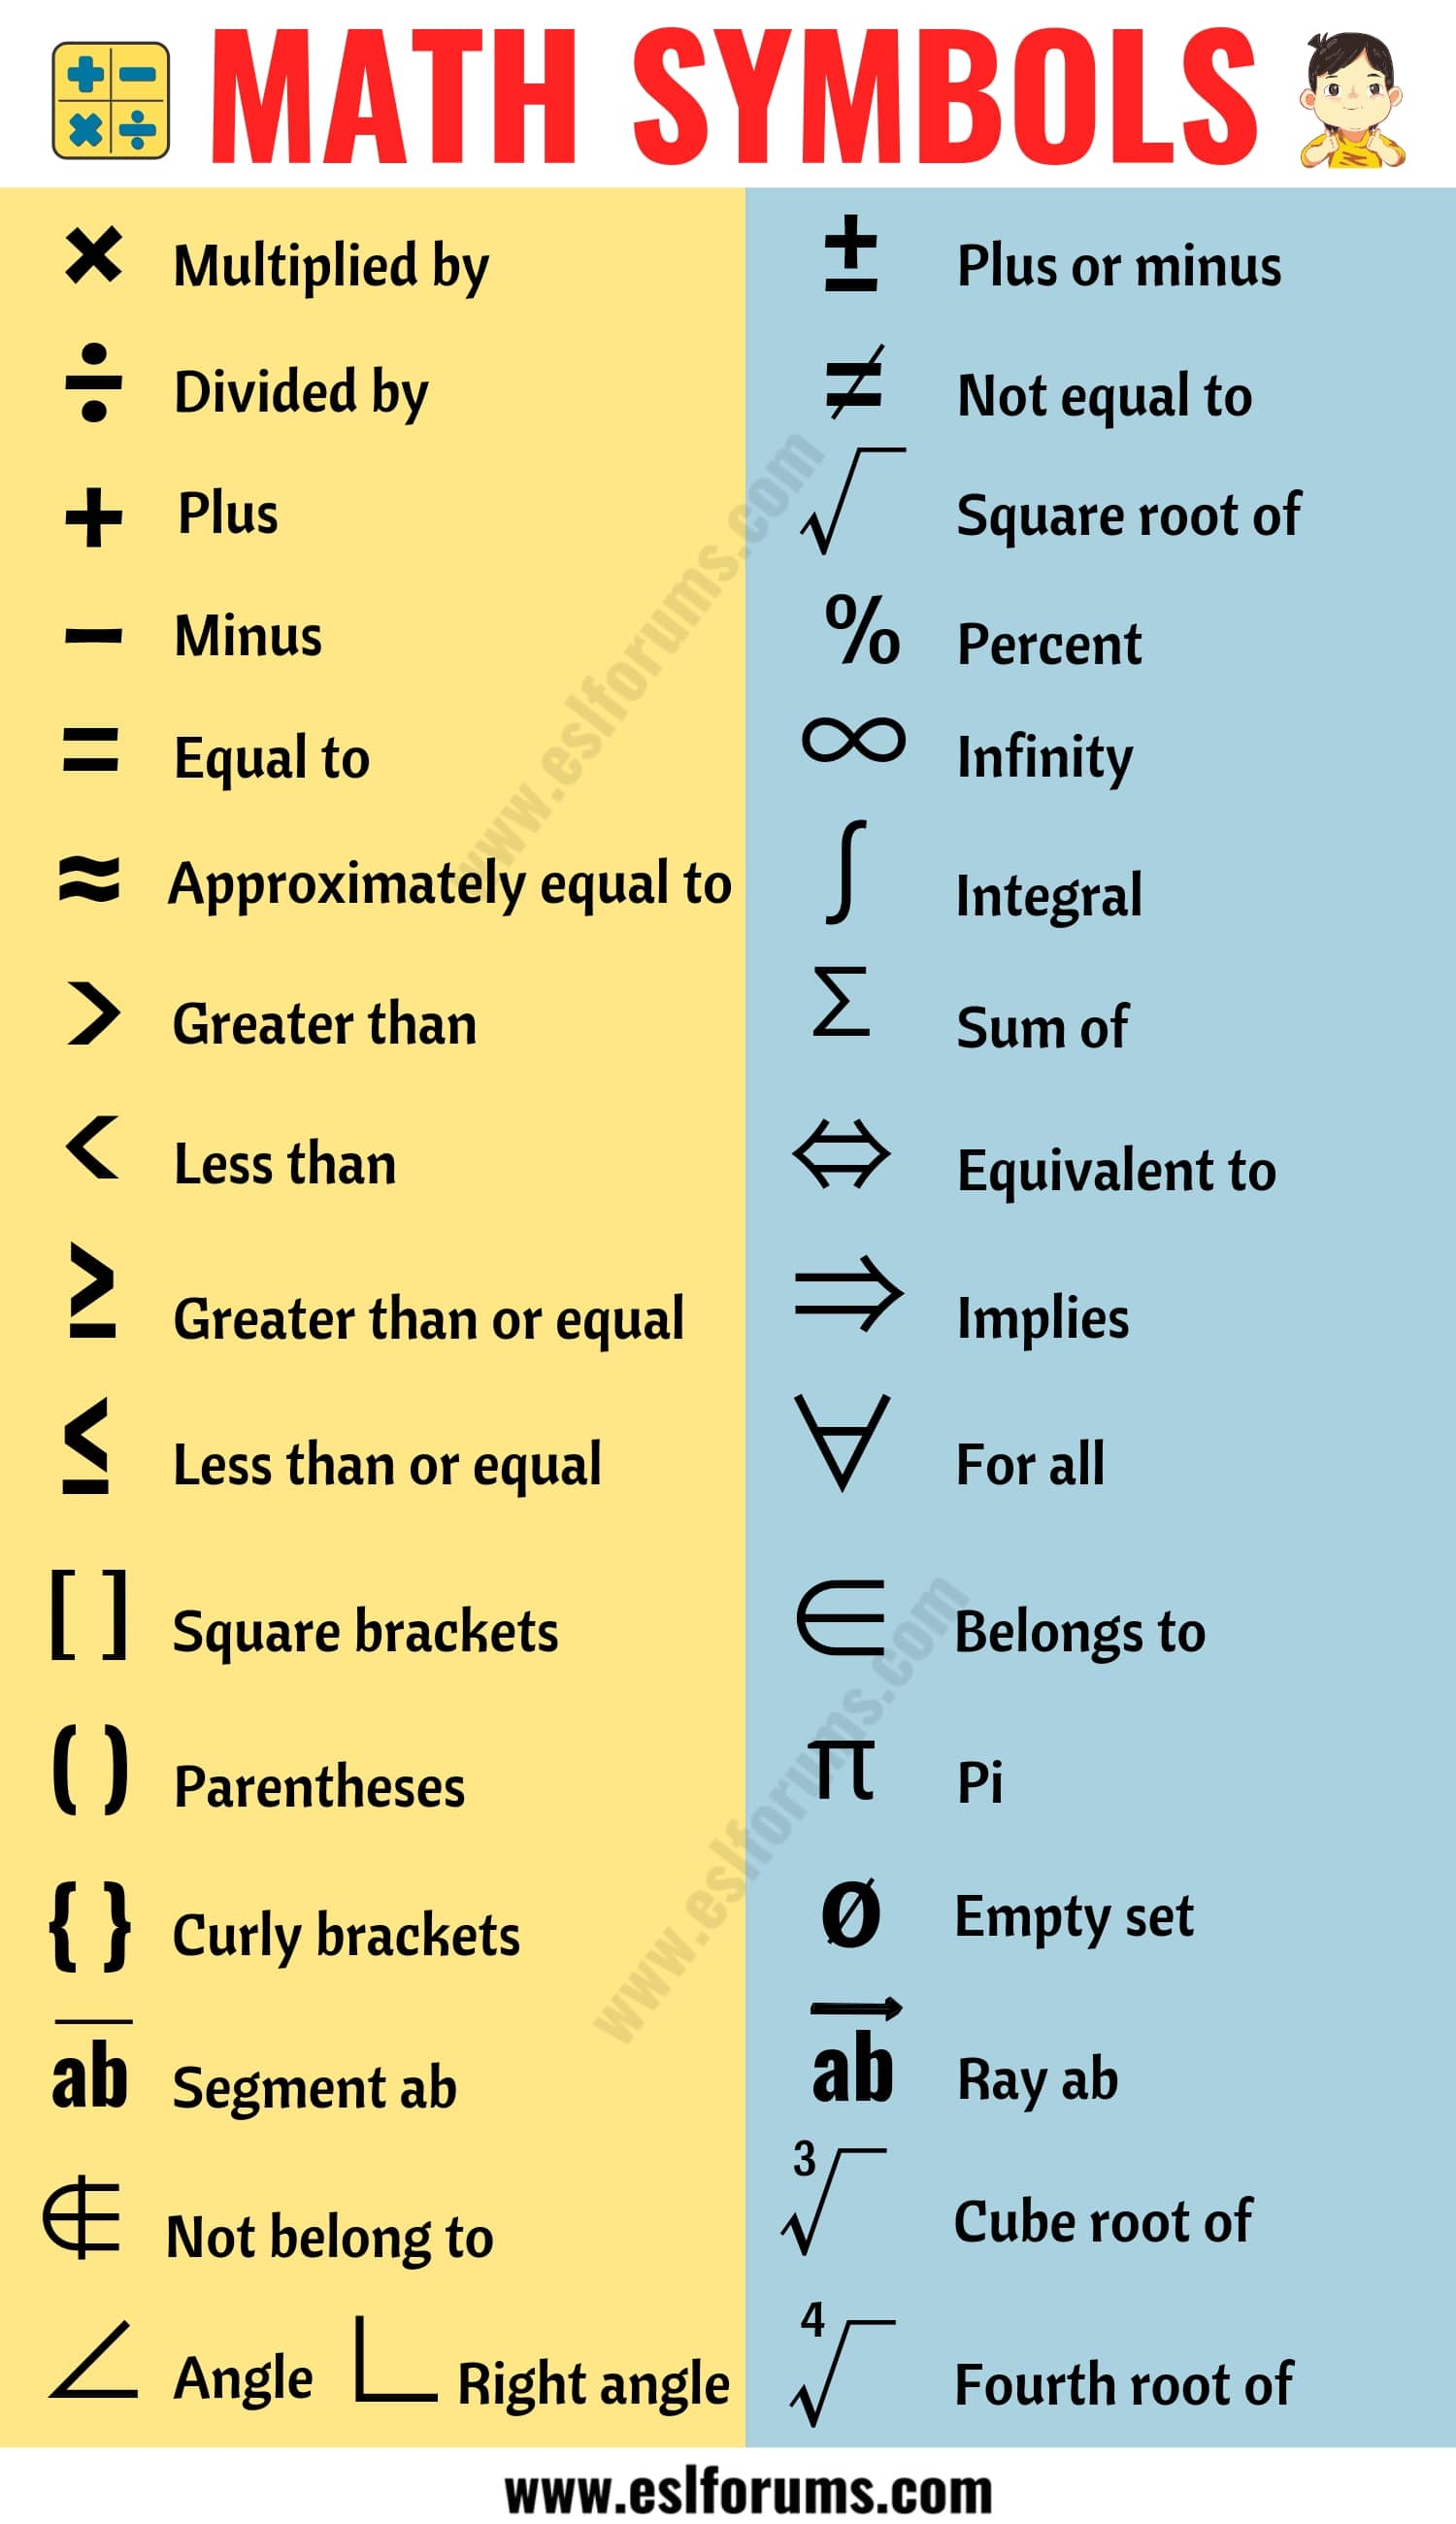 Math Symbols: List of 35+ Useful Mathematical Symbols and their Names